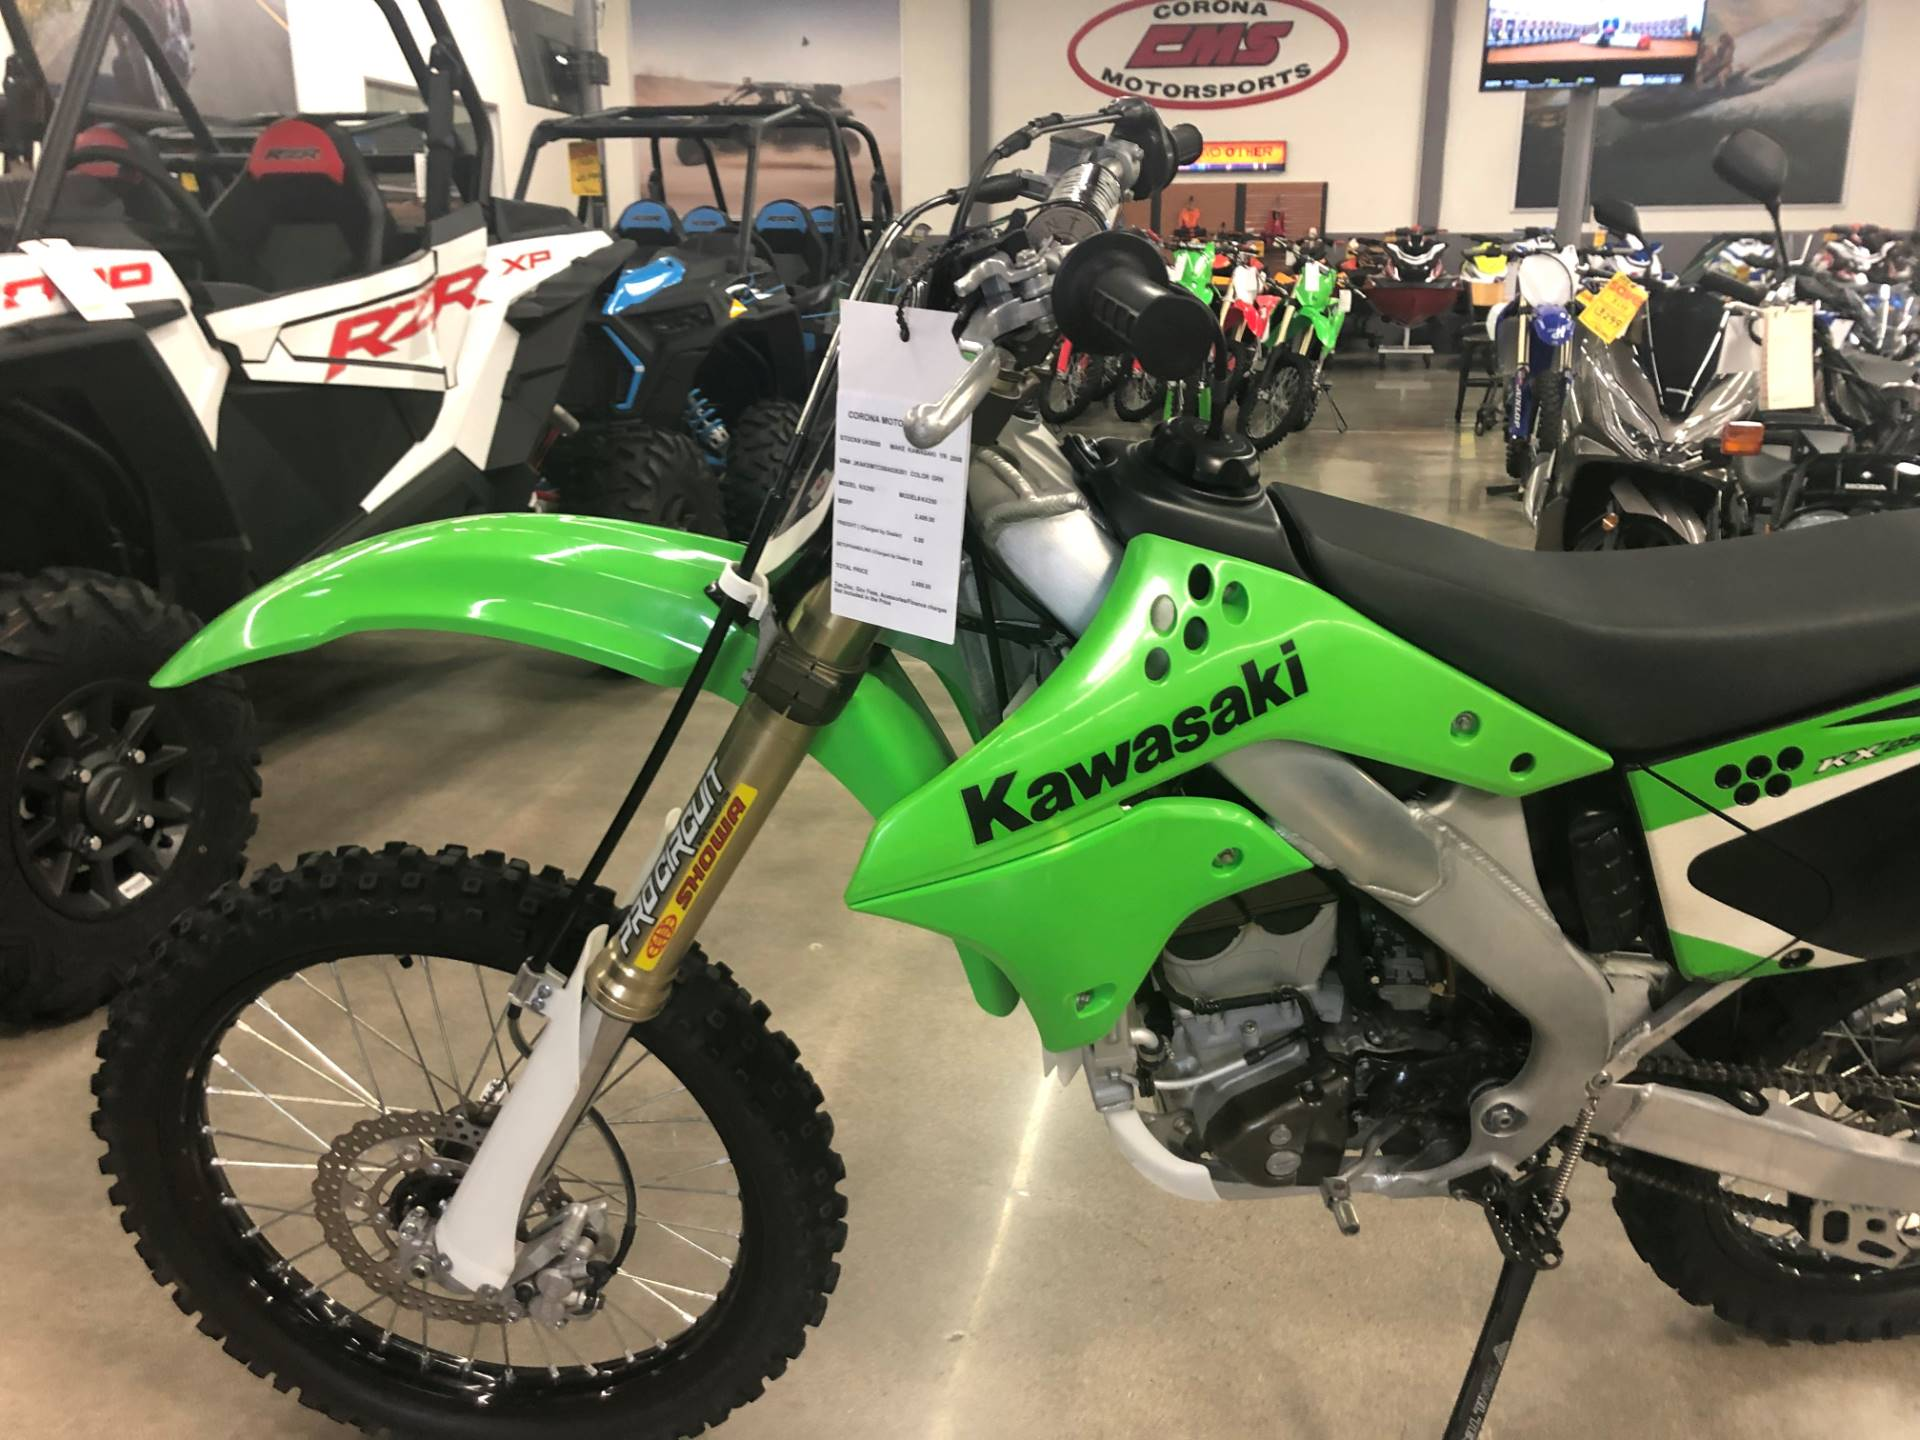 2008 Kawasaki KX™250F in Corona, California - Photo 2